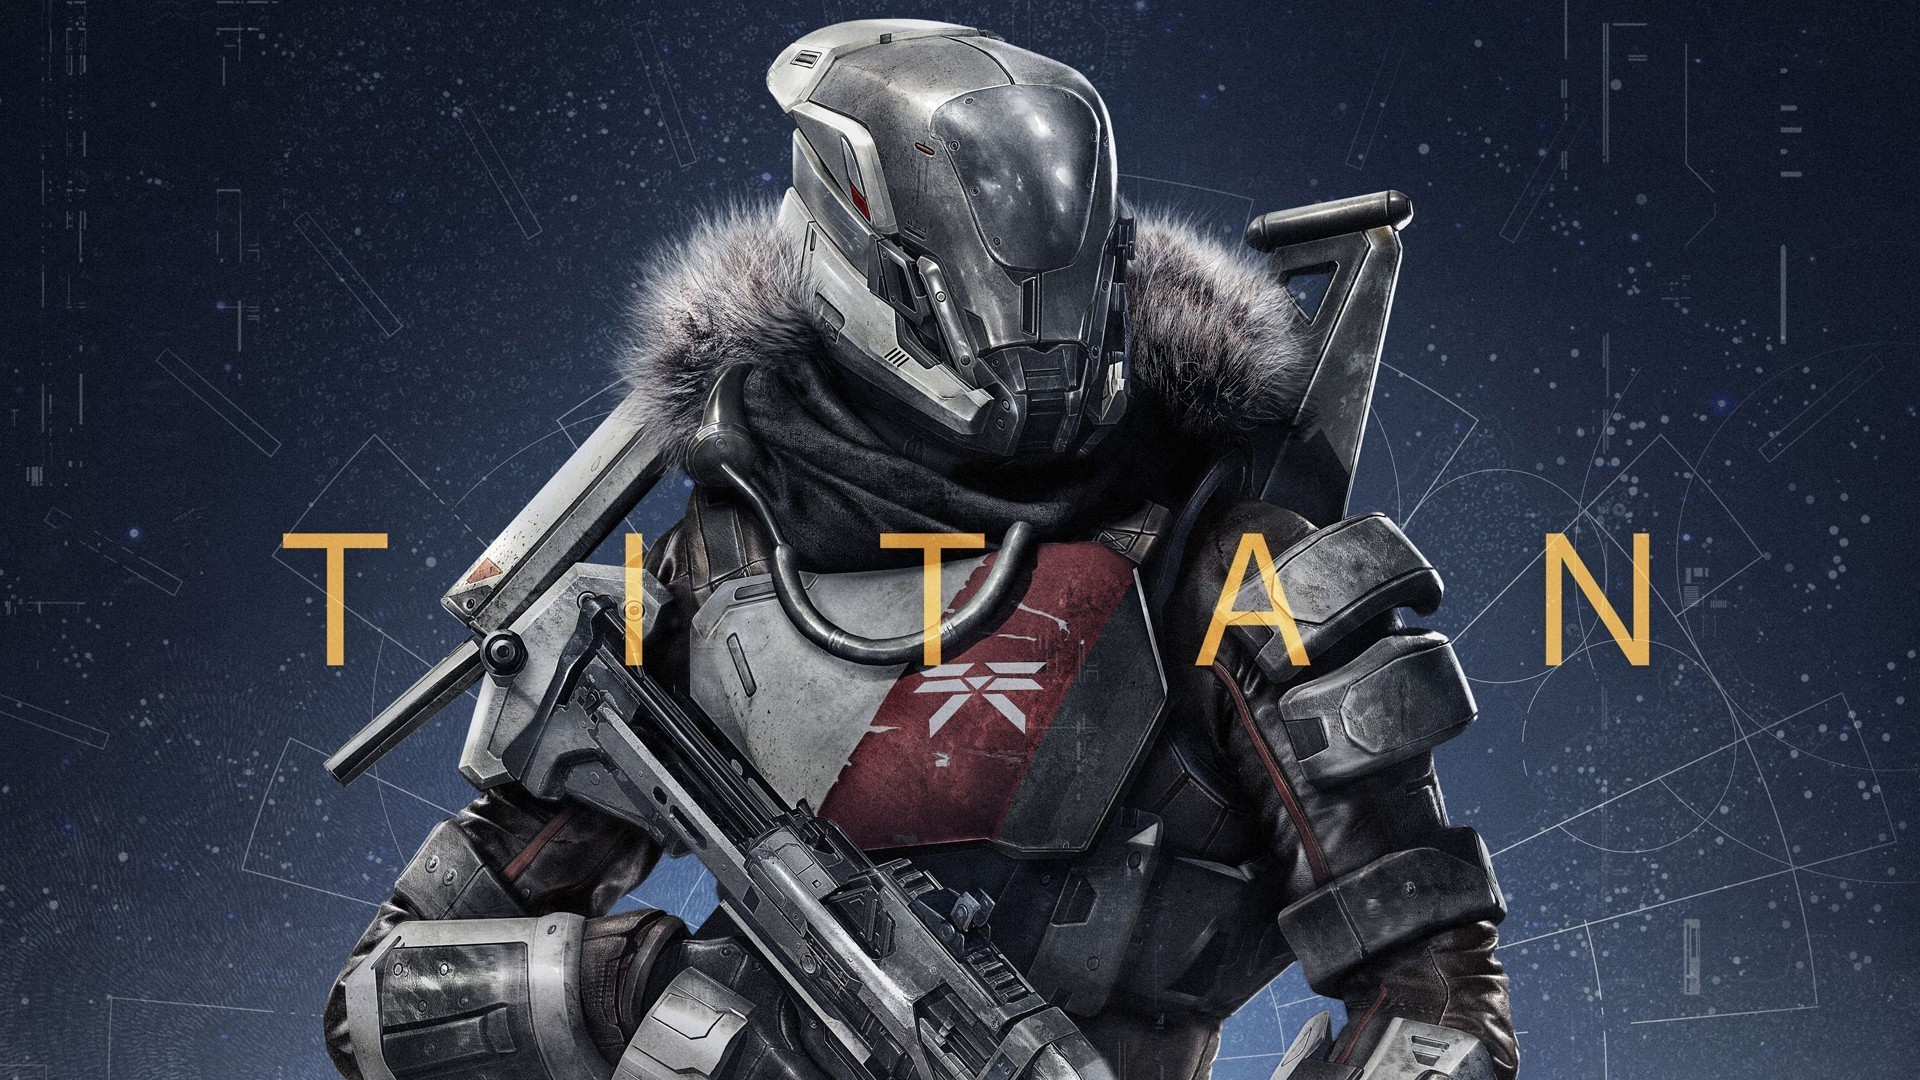 I wish the Titan could wear hooded cloaks too - Destiny Message Board for PlayStation 4 - GameFAQs